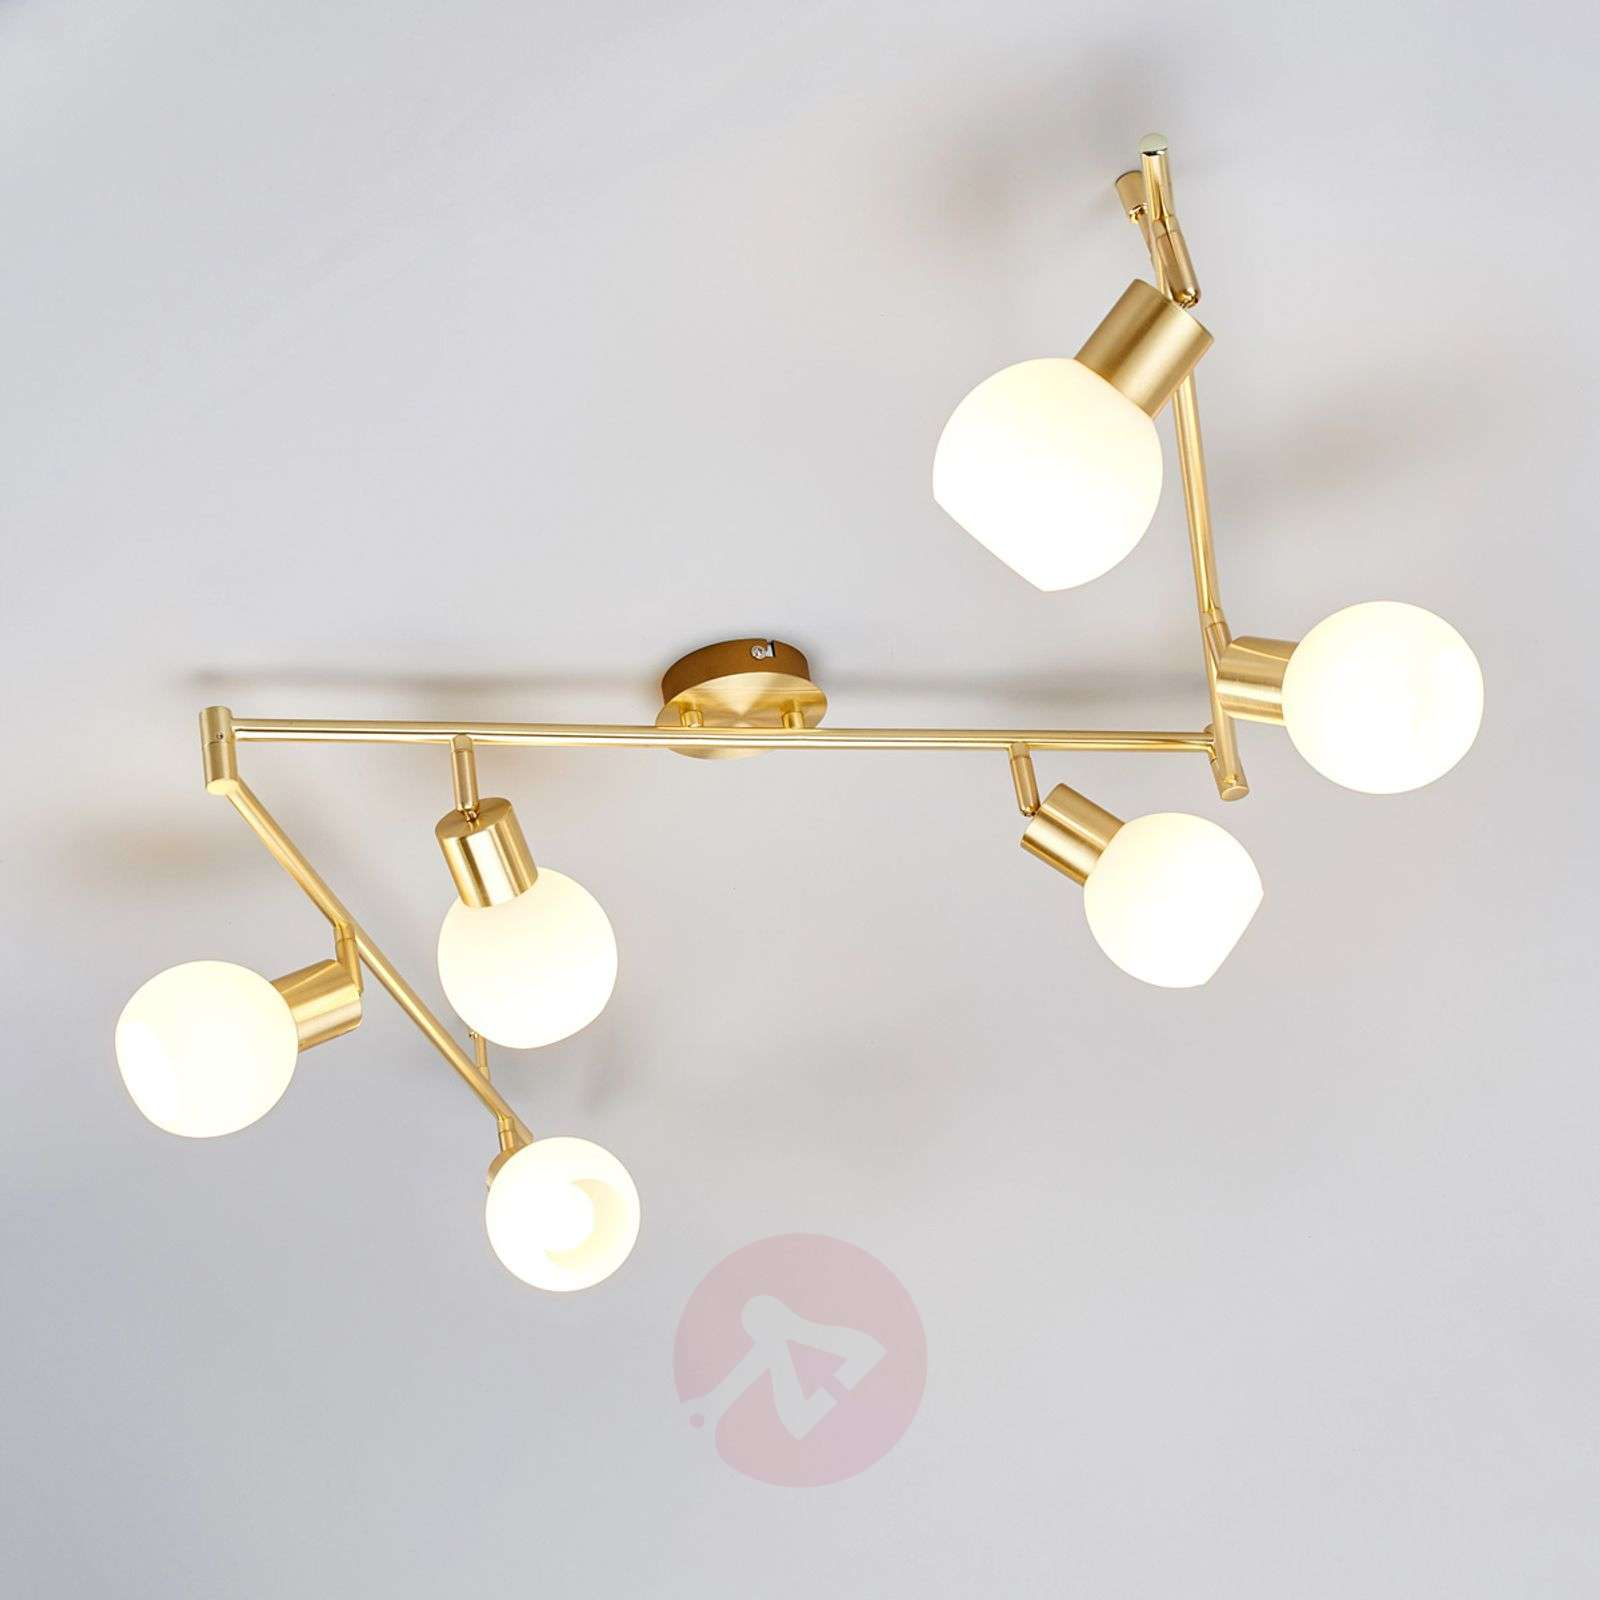 Led Ceiling Lights Brass : Six bulb led ceiling light elaina brass lights